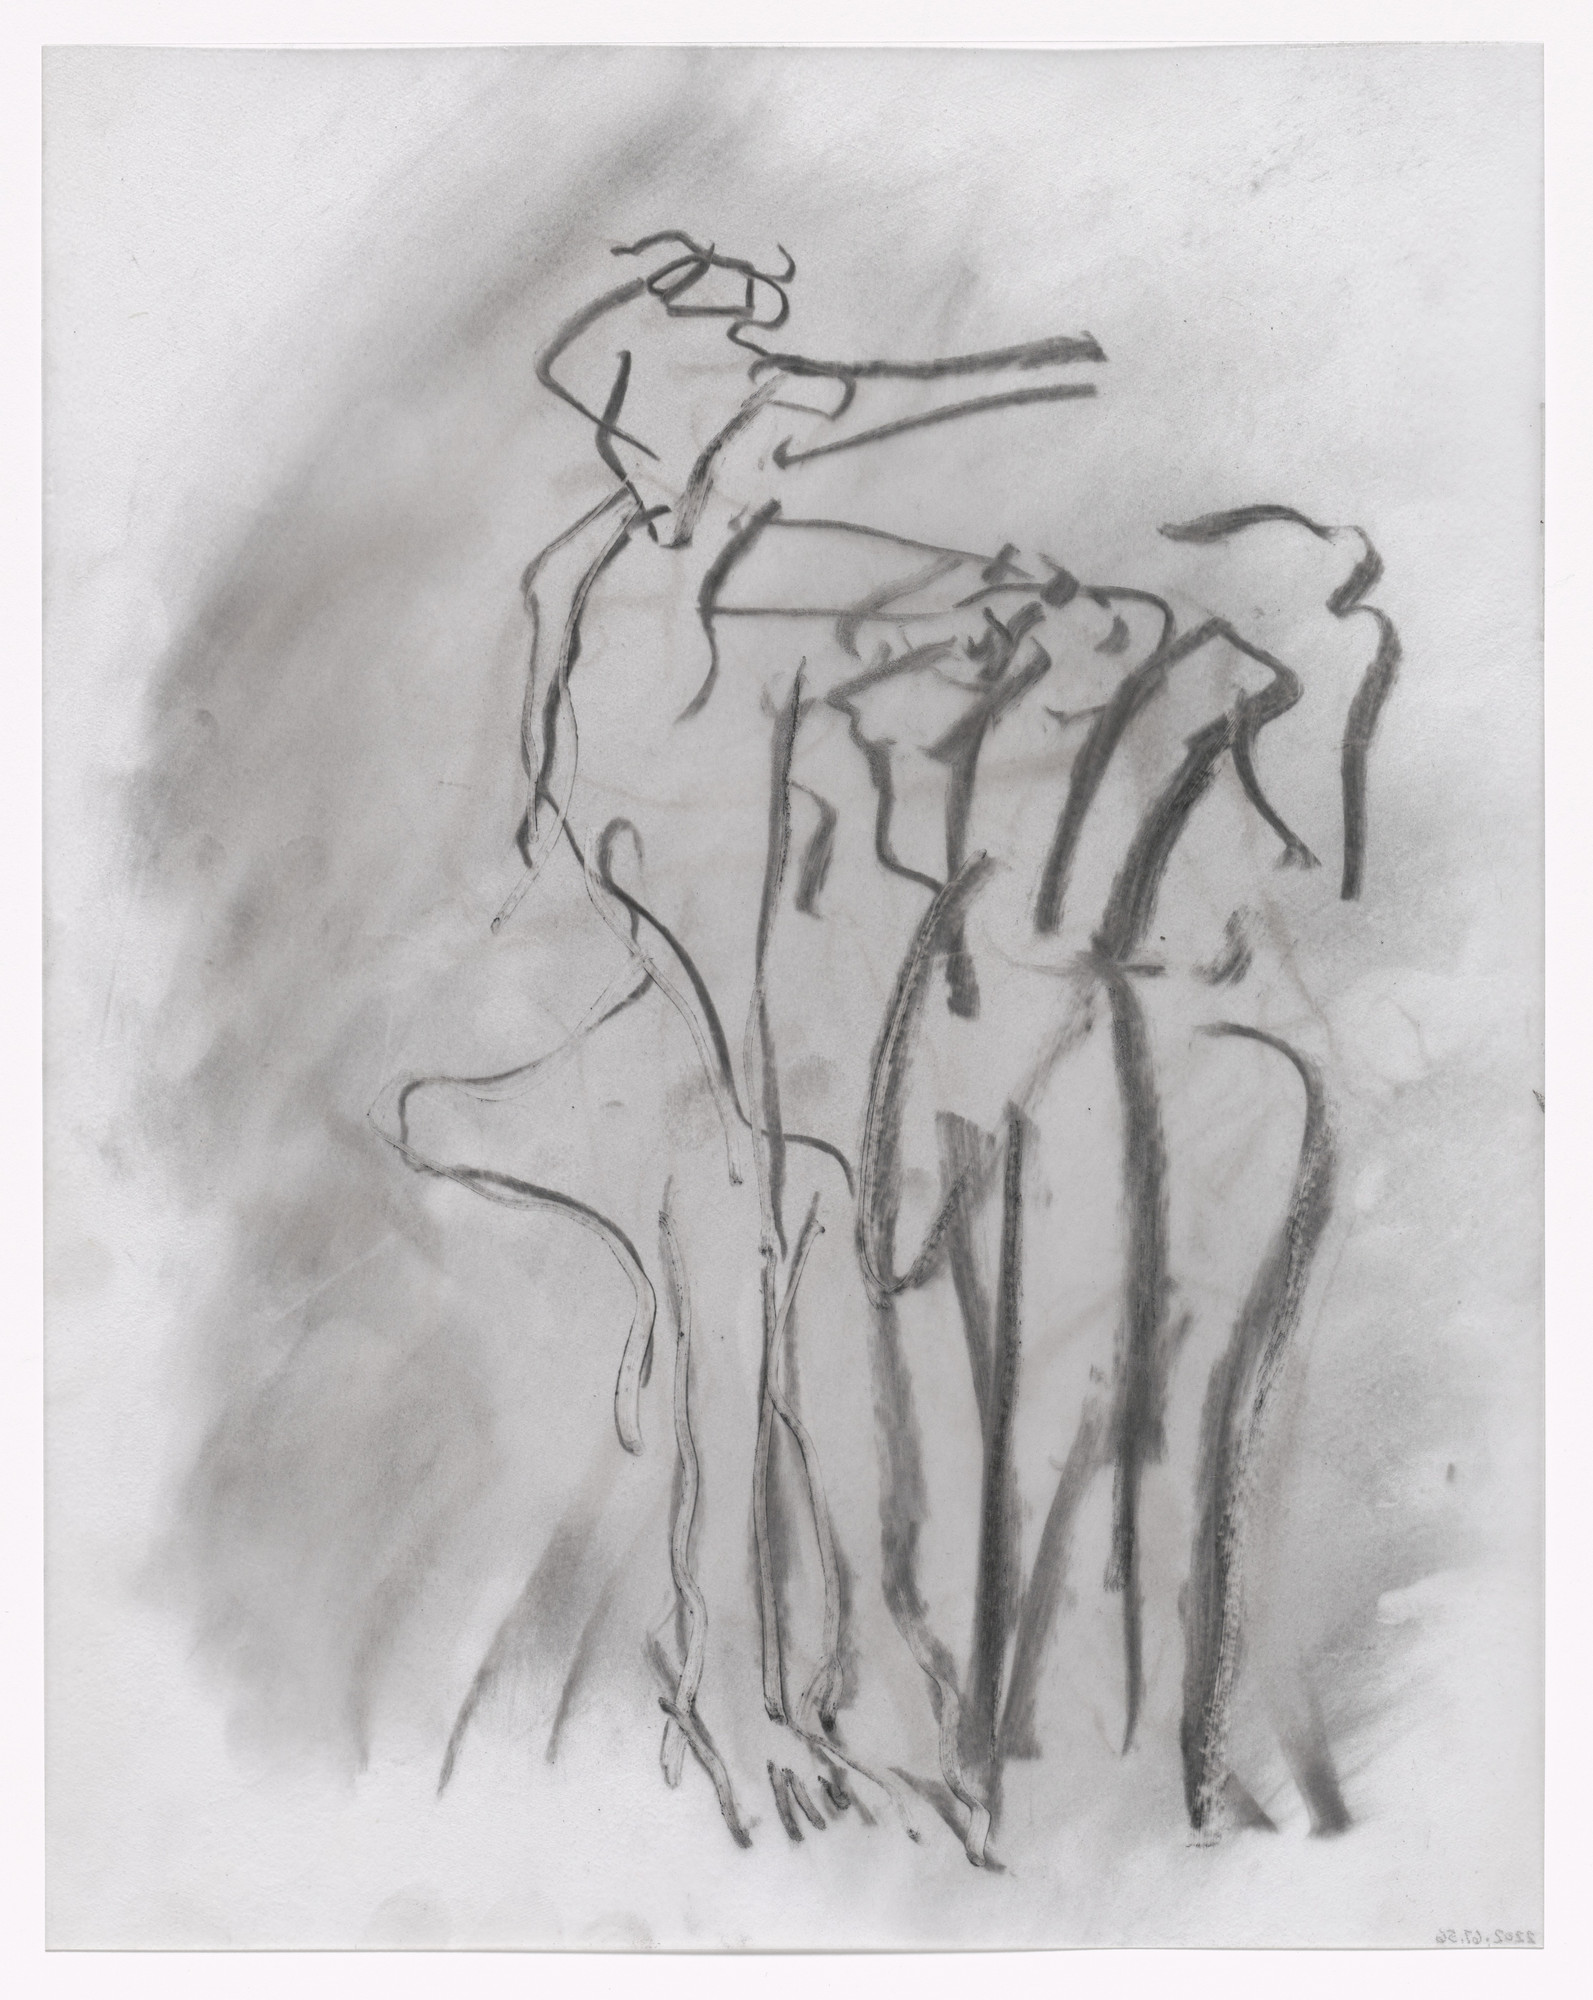 Willem de Kooning. Unused preparatory drawing for In Memory of My Feelings. 1967